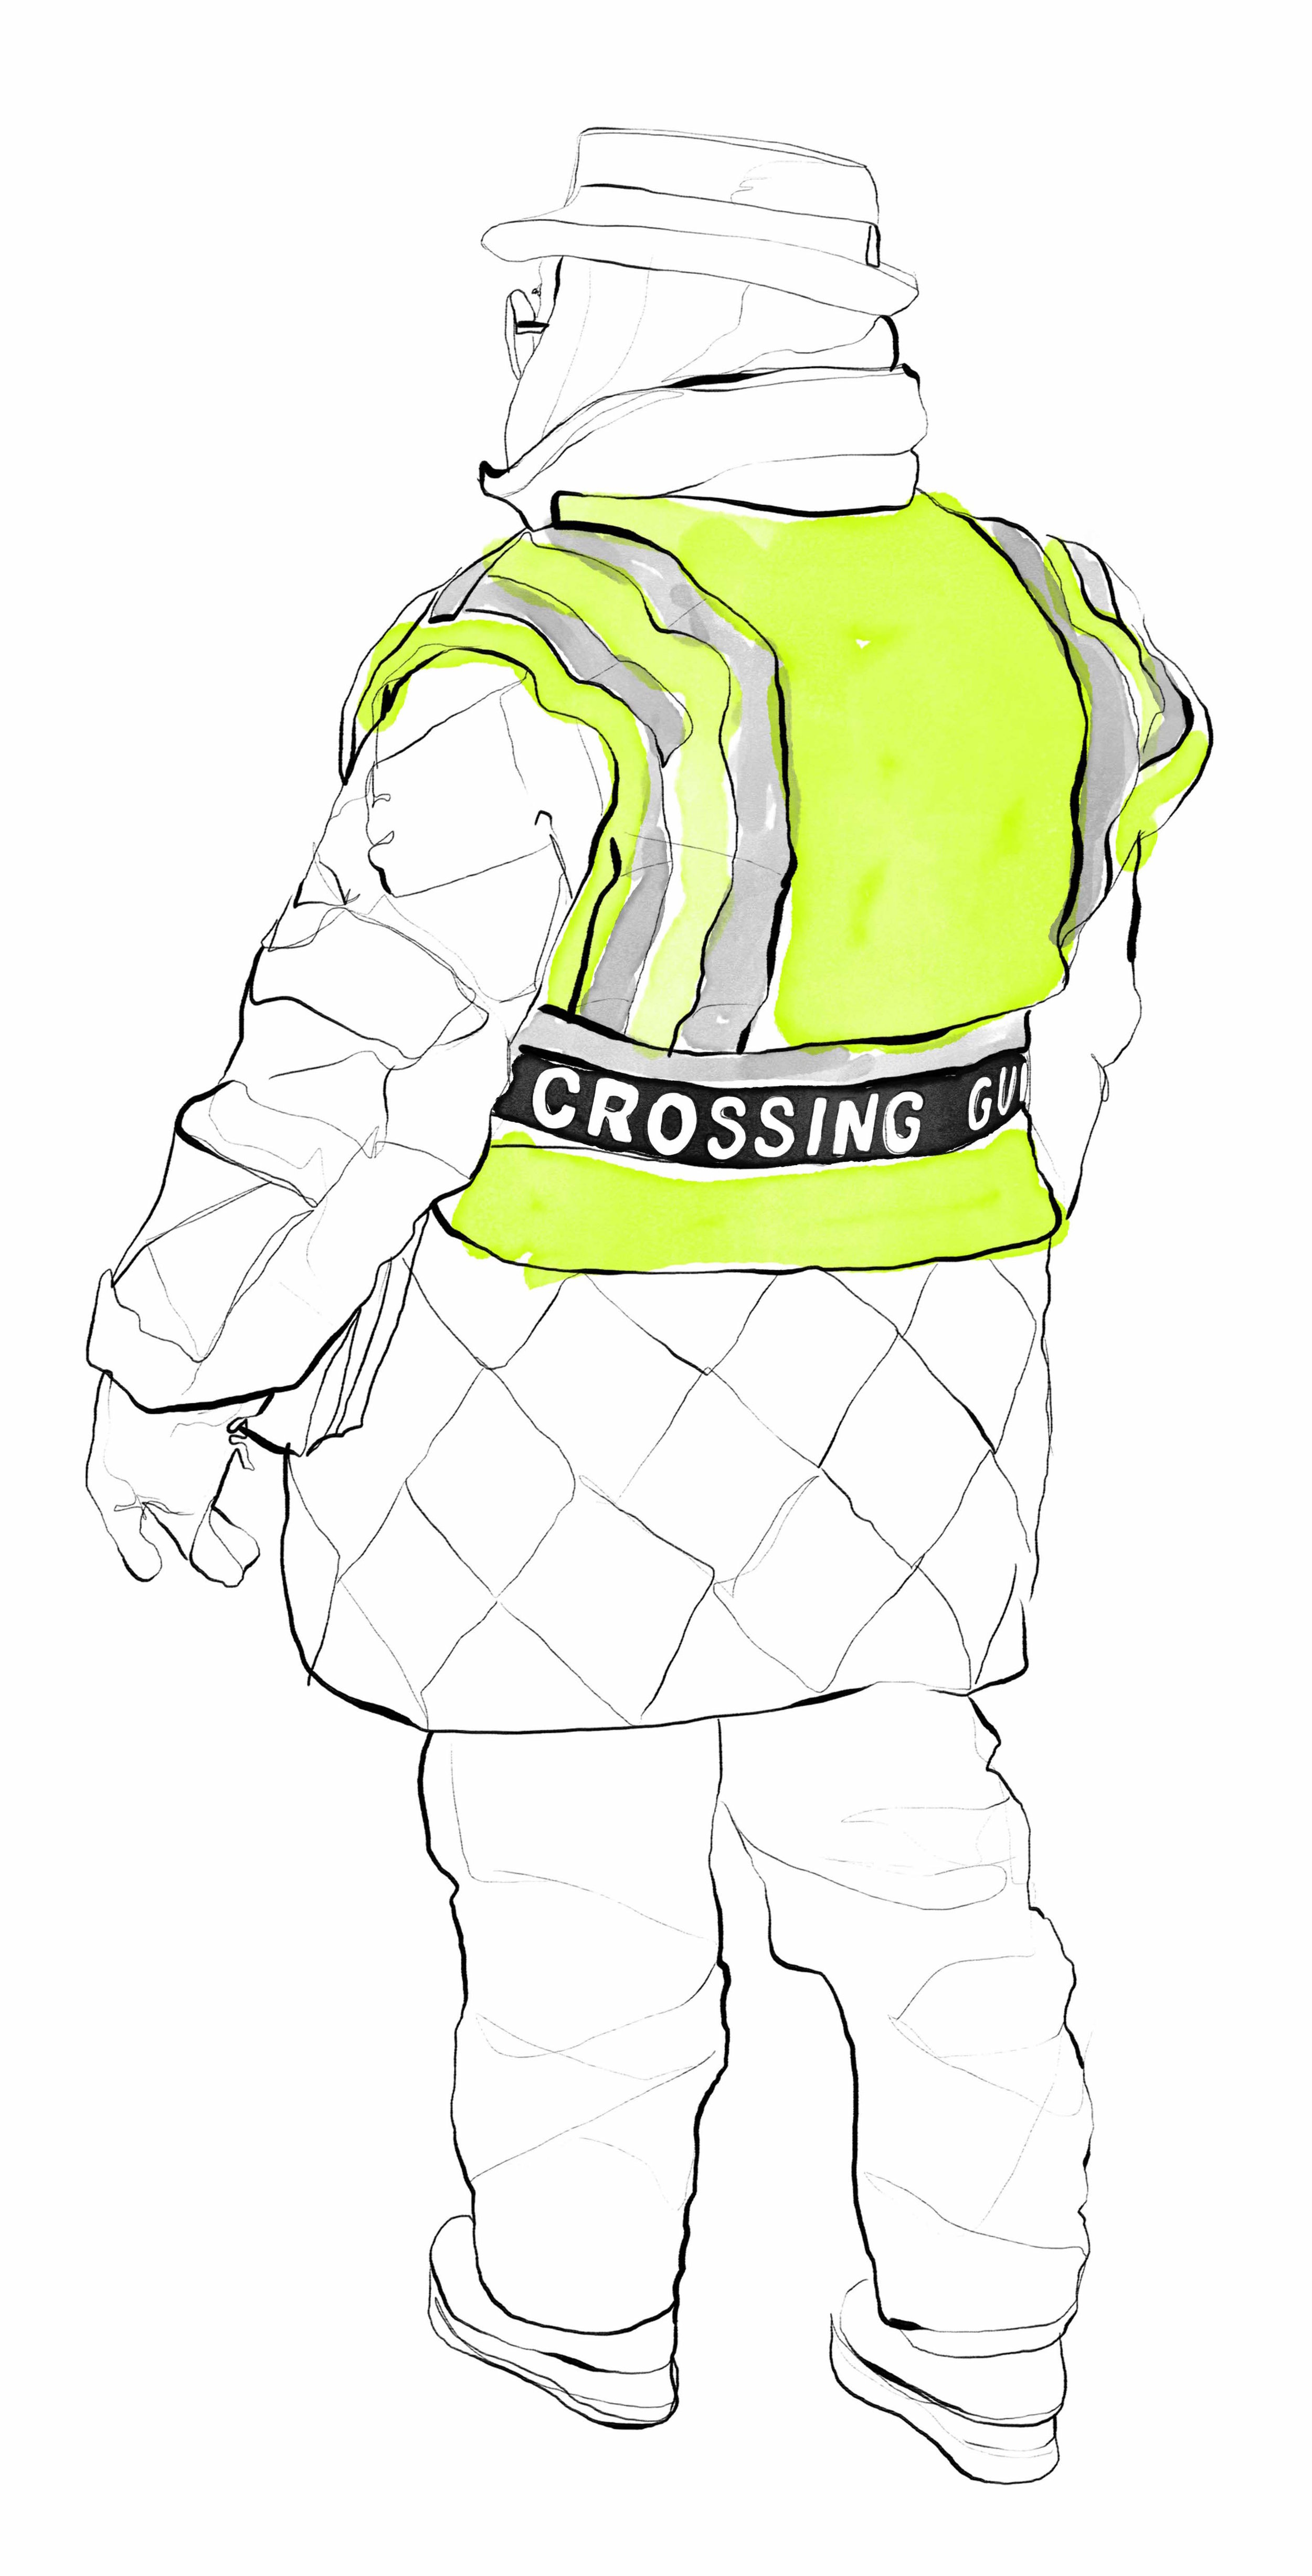 Crossing Guard on Grand St